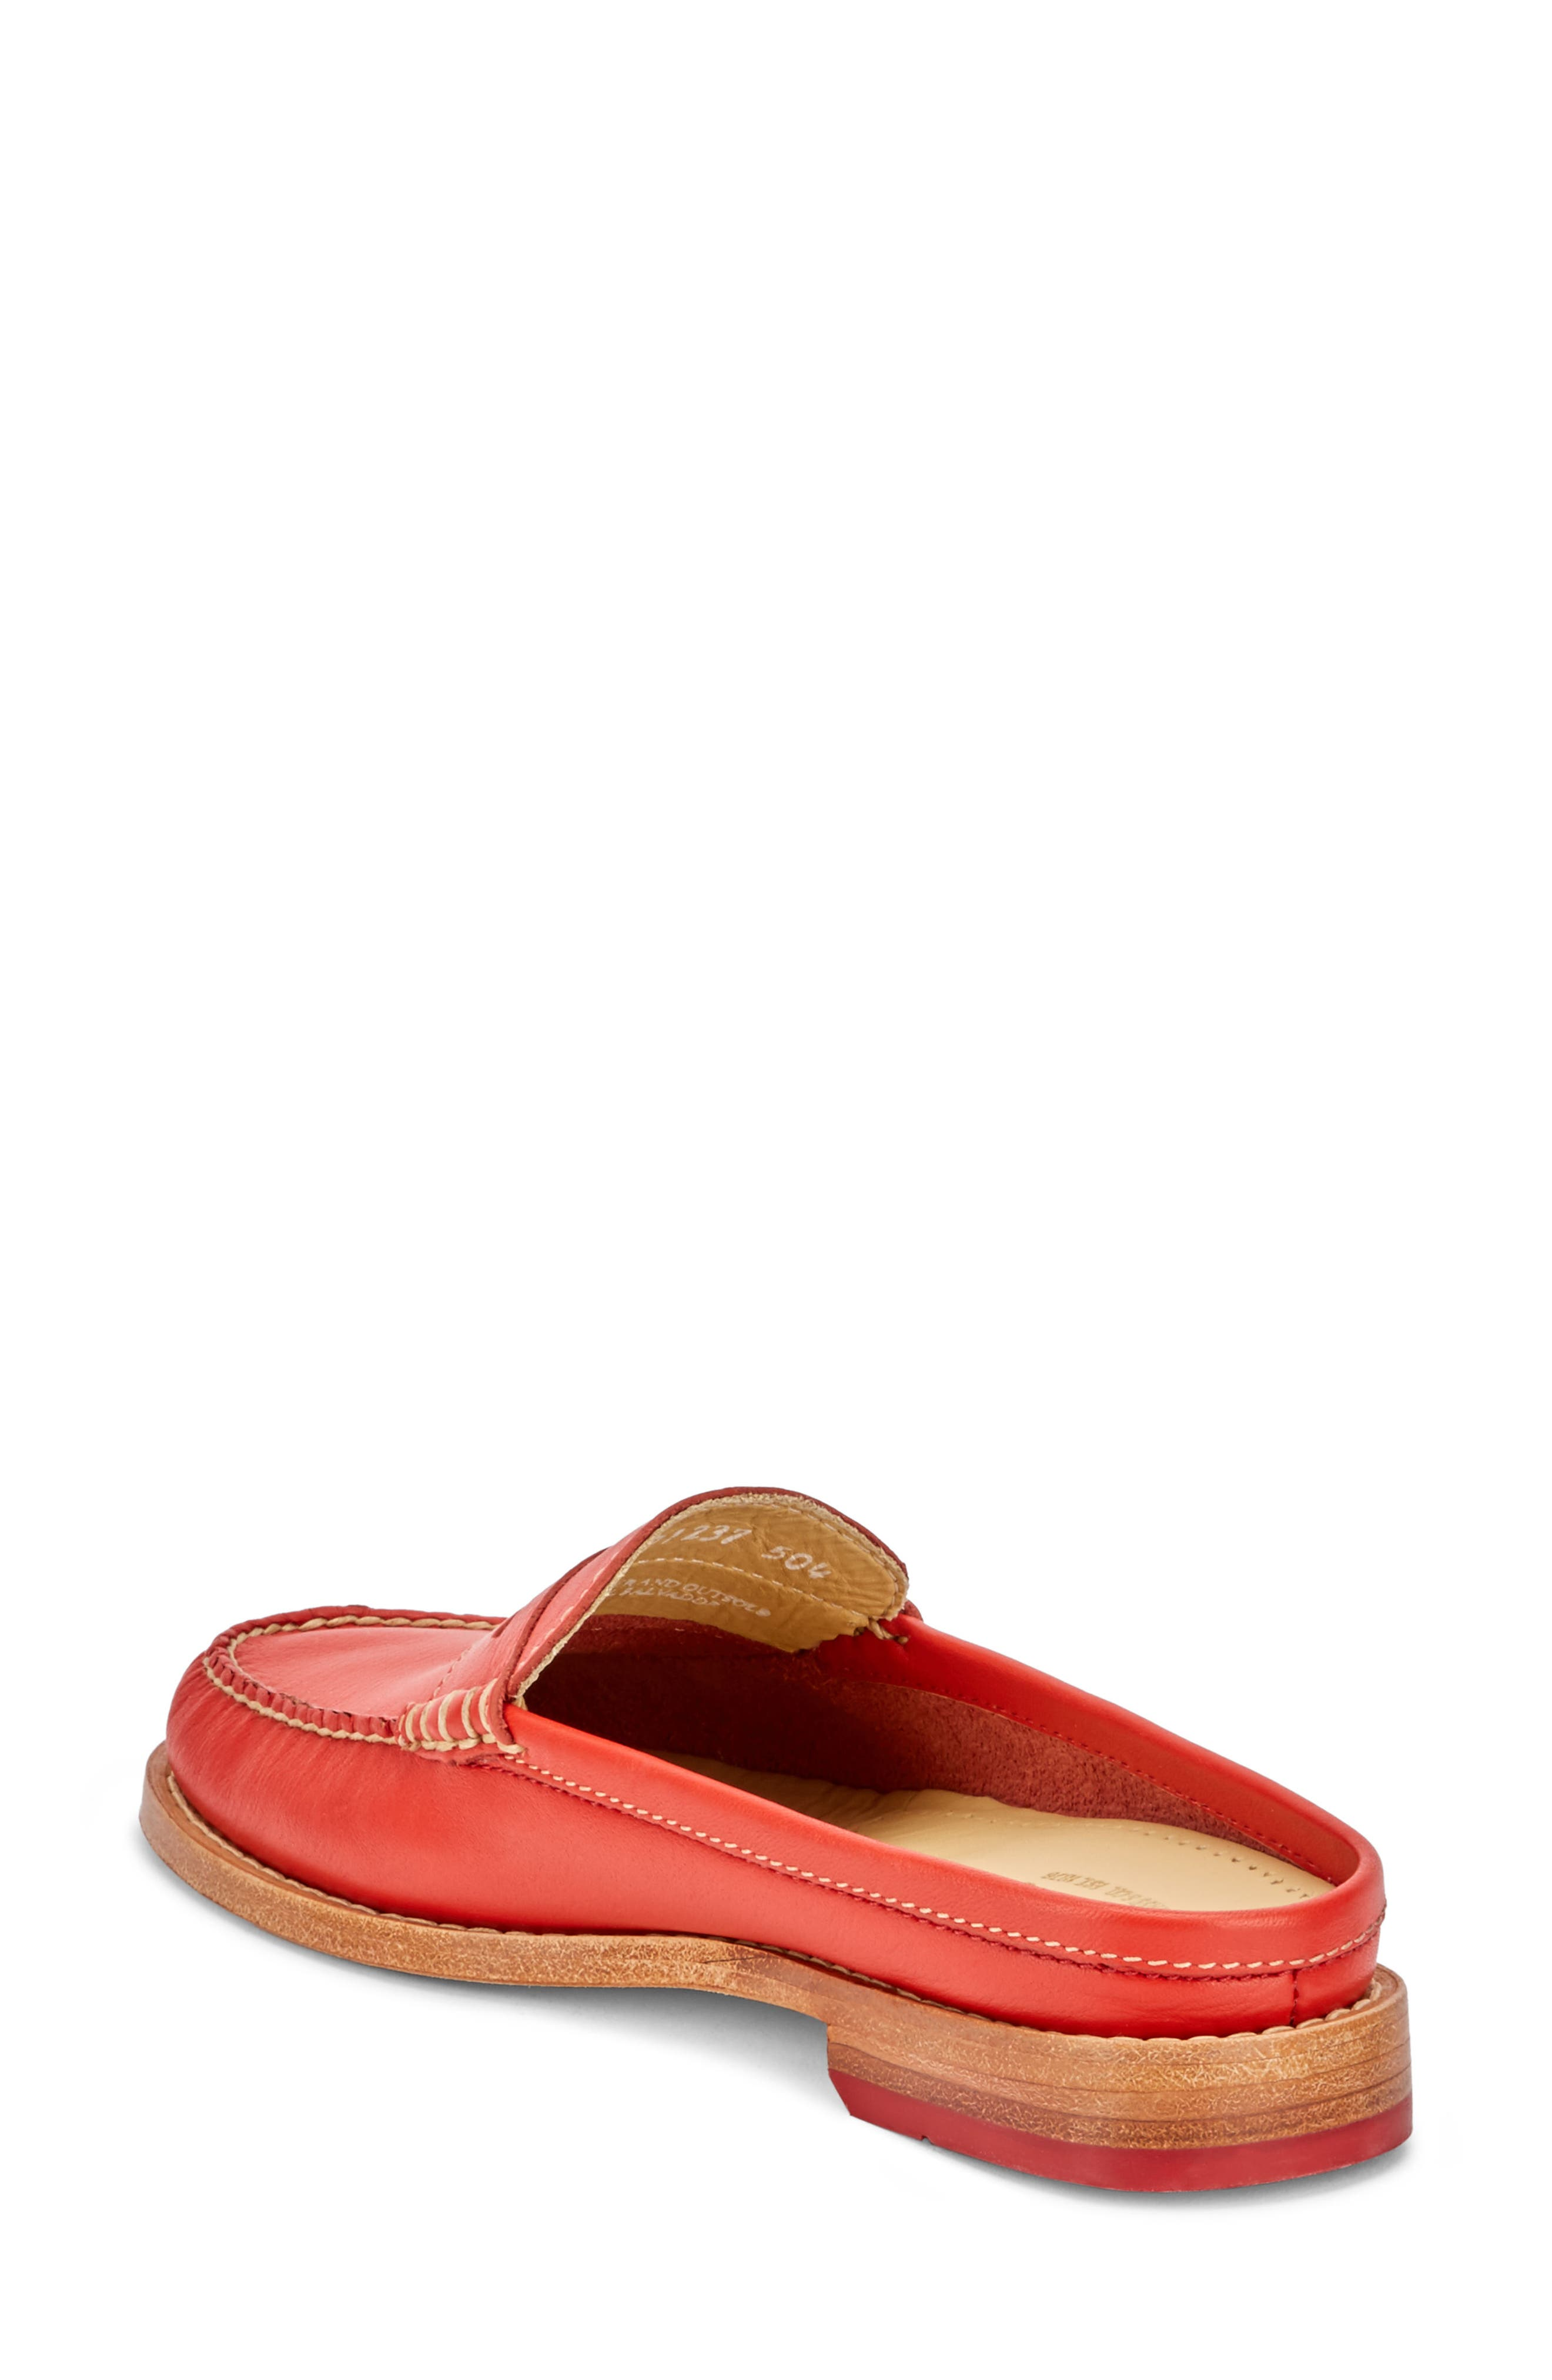 Wynn Loafer Mule,                             Alternate thumbnail 38, color,